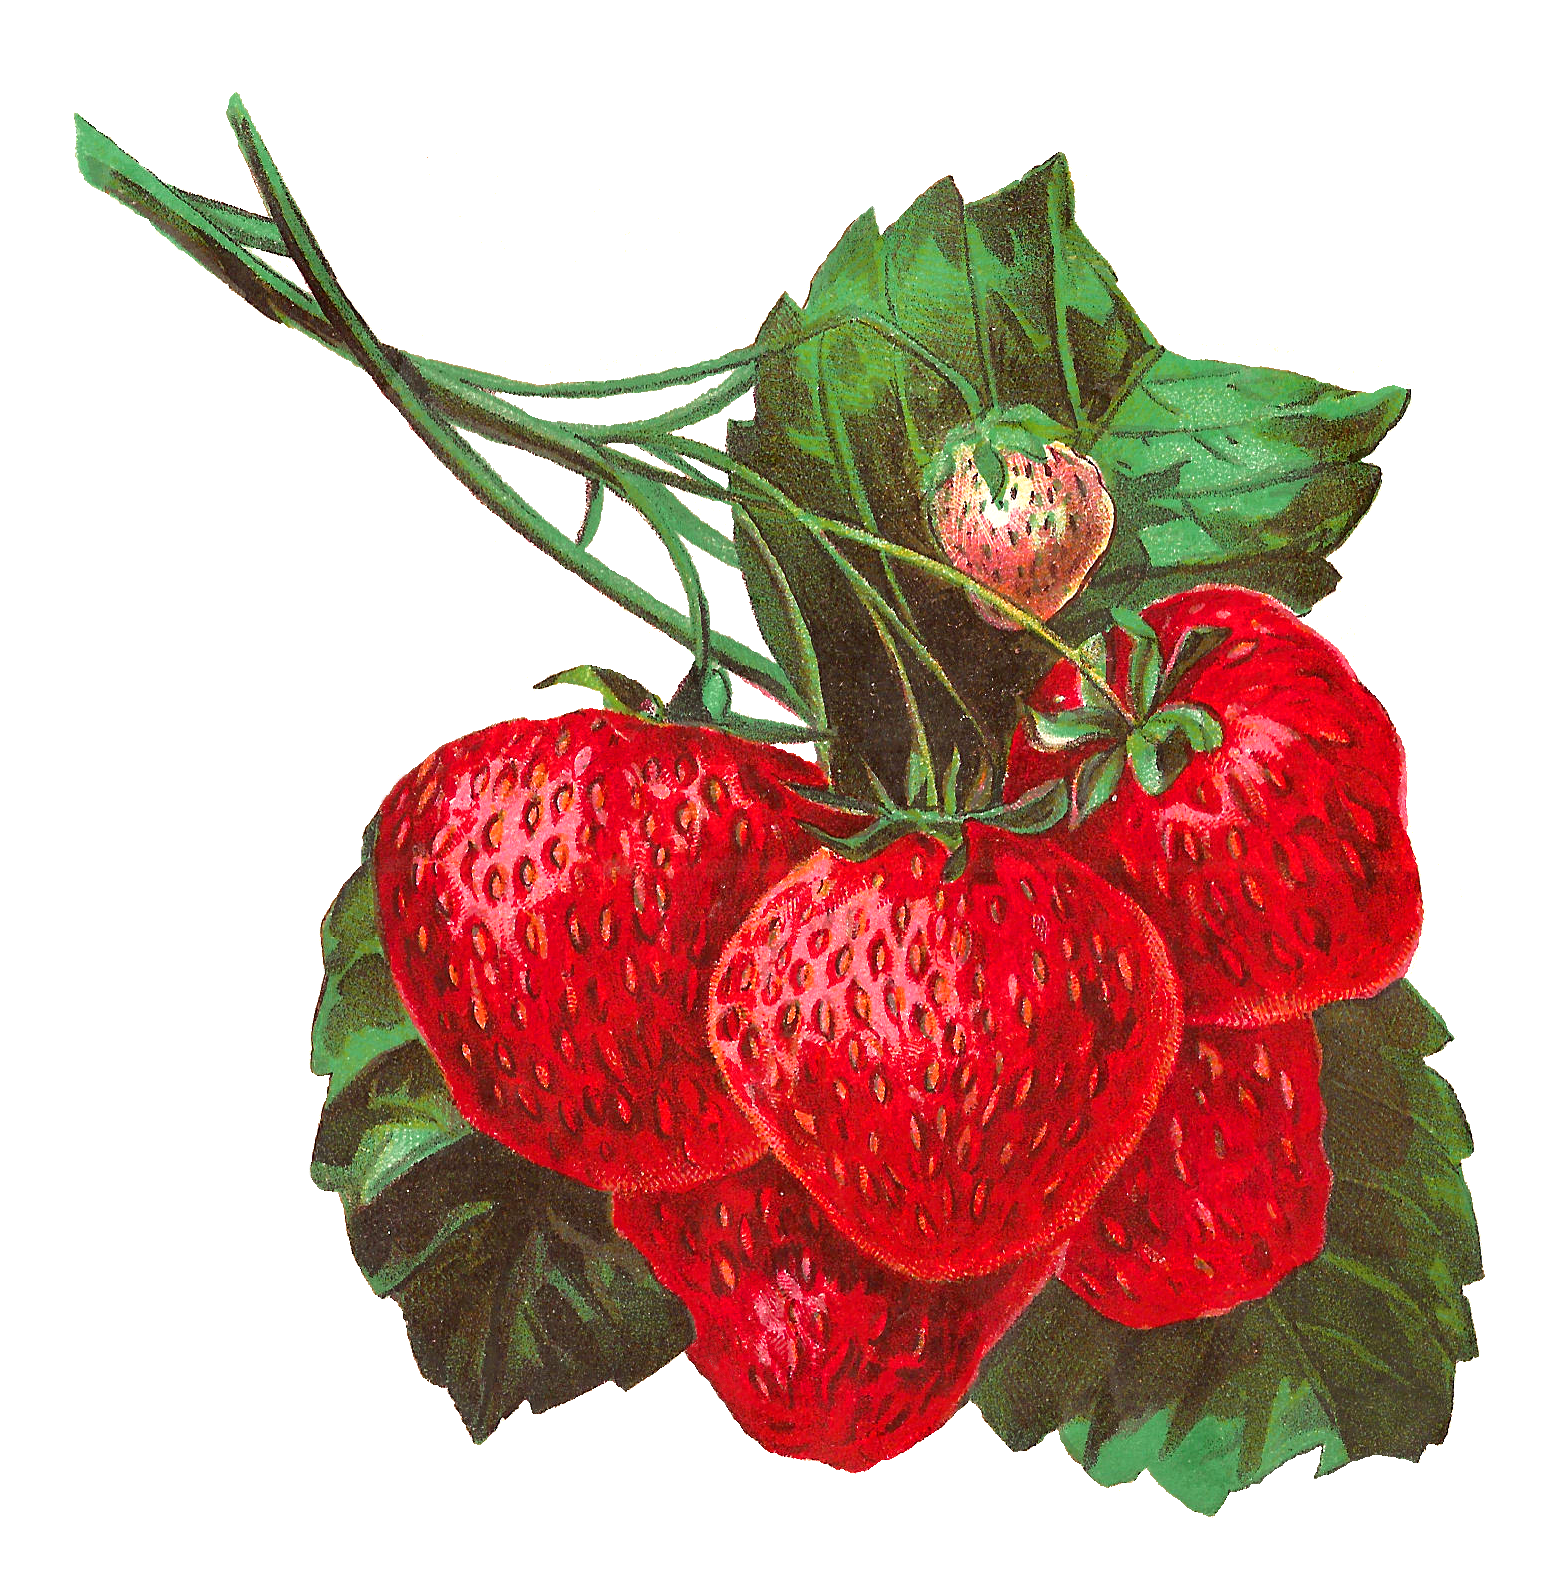 Strawberries clipart simple strawberry. Antique images stock digital